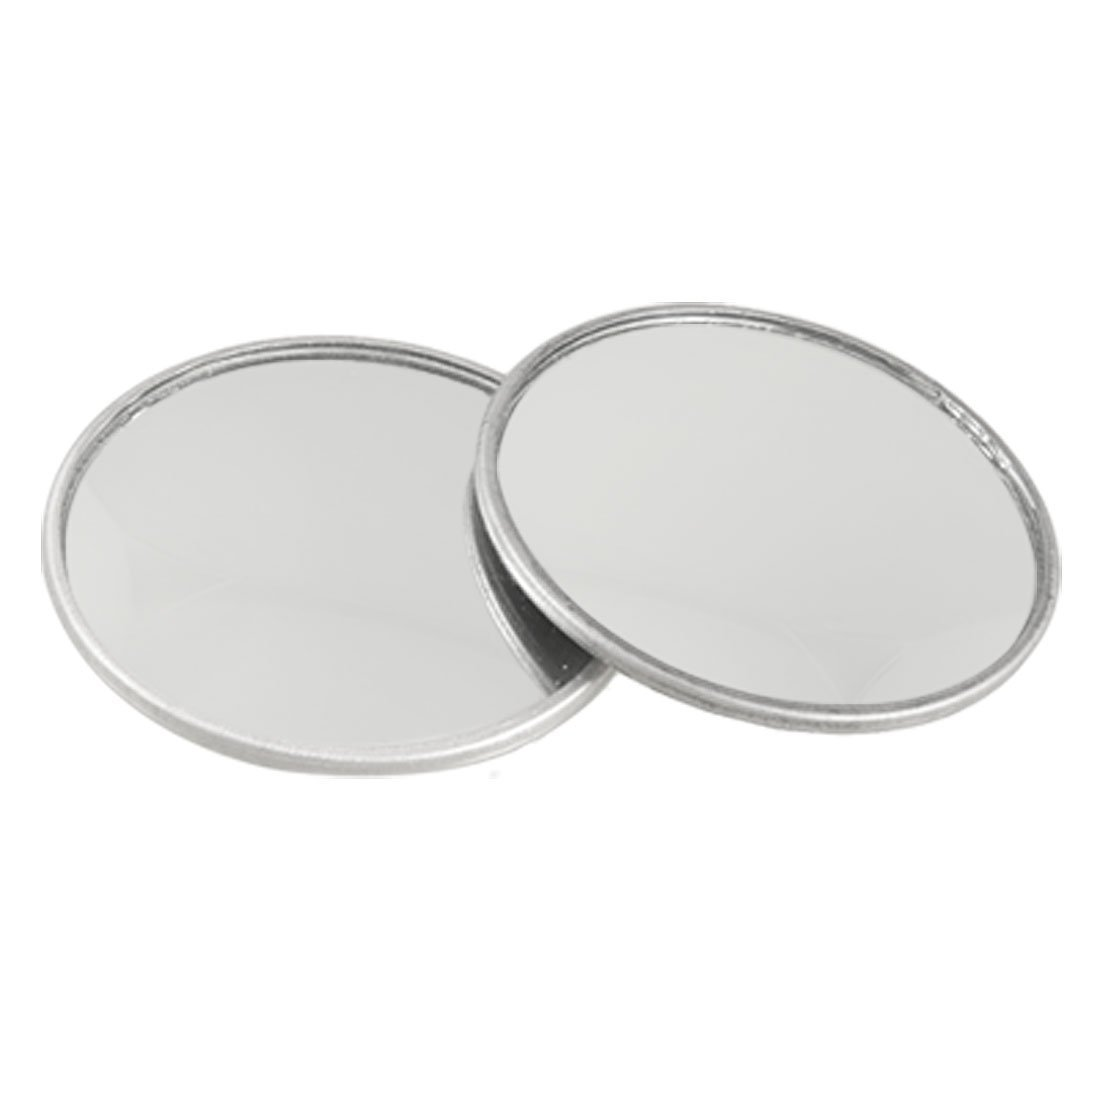 R SODIAL 2 Pcs 2 Diameter Convex Self Adhesive Blind Spot Mirror for Car